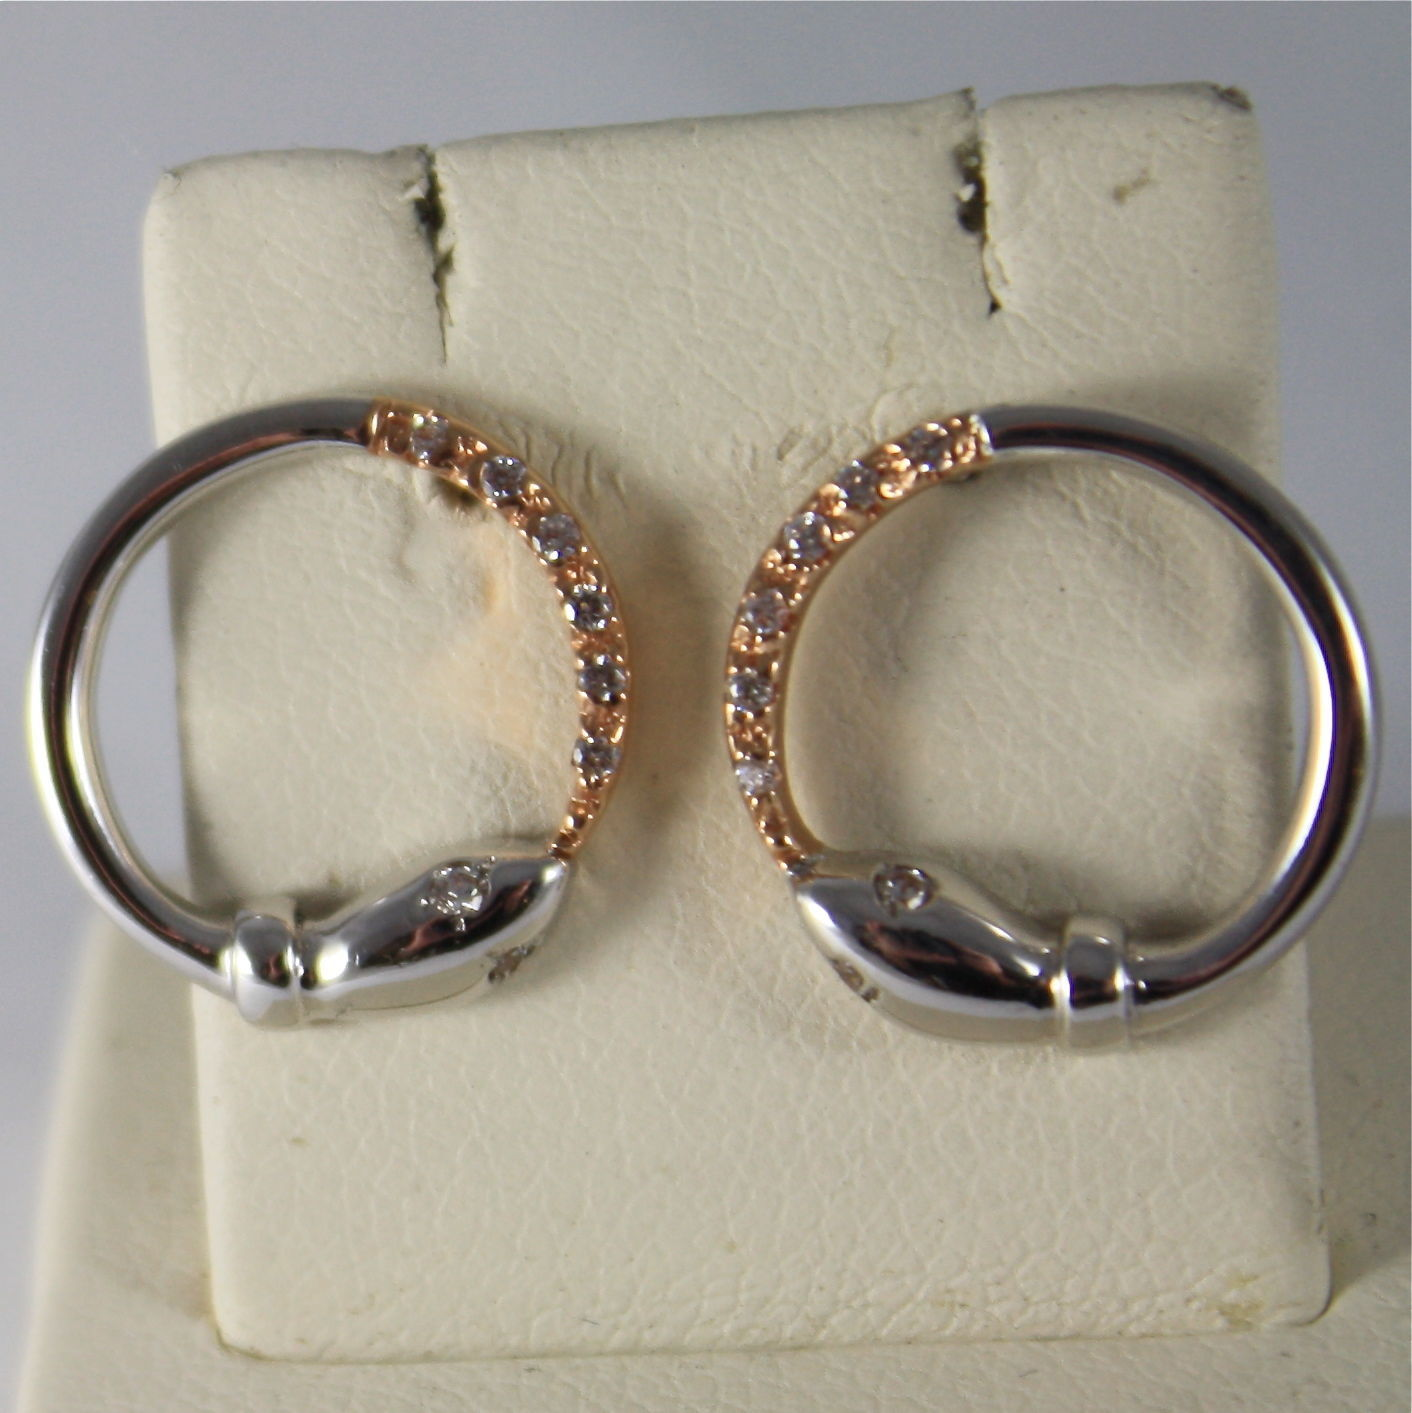 SOLID 18K WHITE AND ROSE GOLD PENDANT EARRINGS, HOOP, SNAKE, MADE IN ITALY